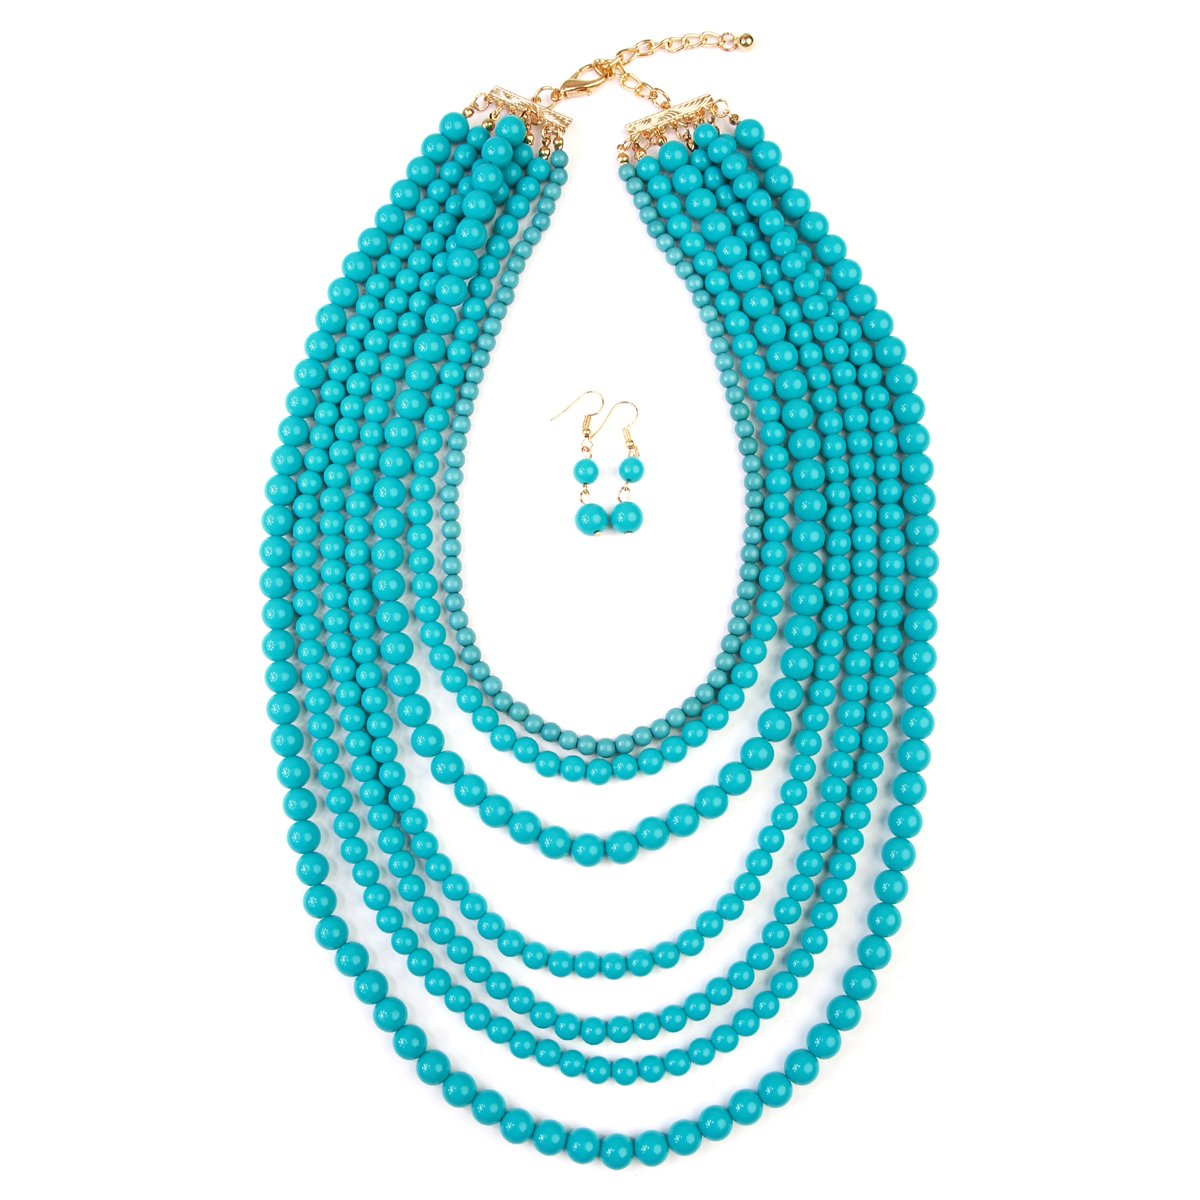 MYS Collection Women's Popular Layered Bubble Statement Necklace Set - Colorful Bead Multi Strand Necklace (Light Turquoise) by MYS Collection